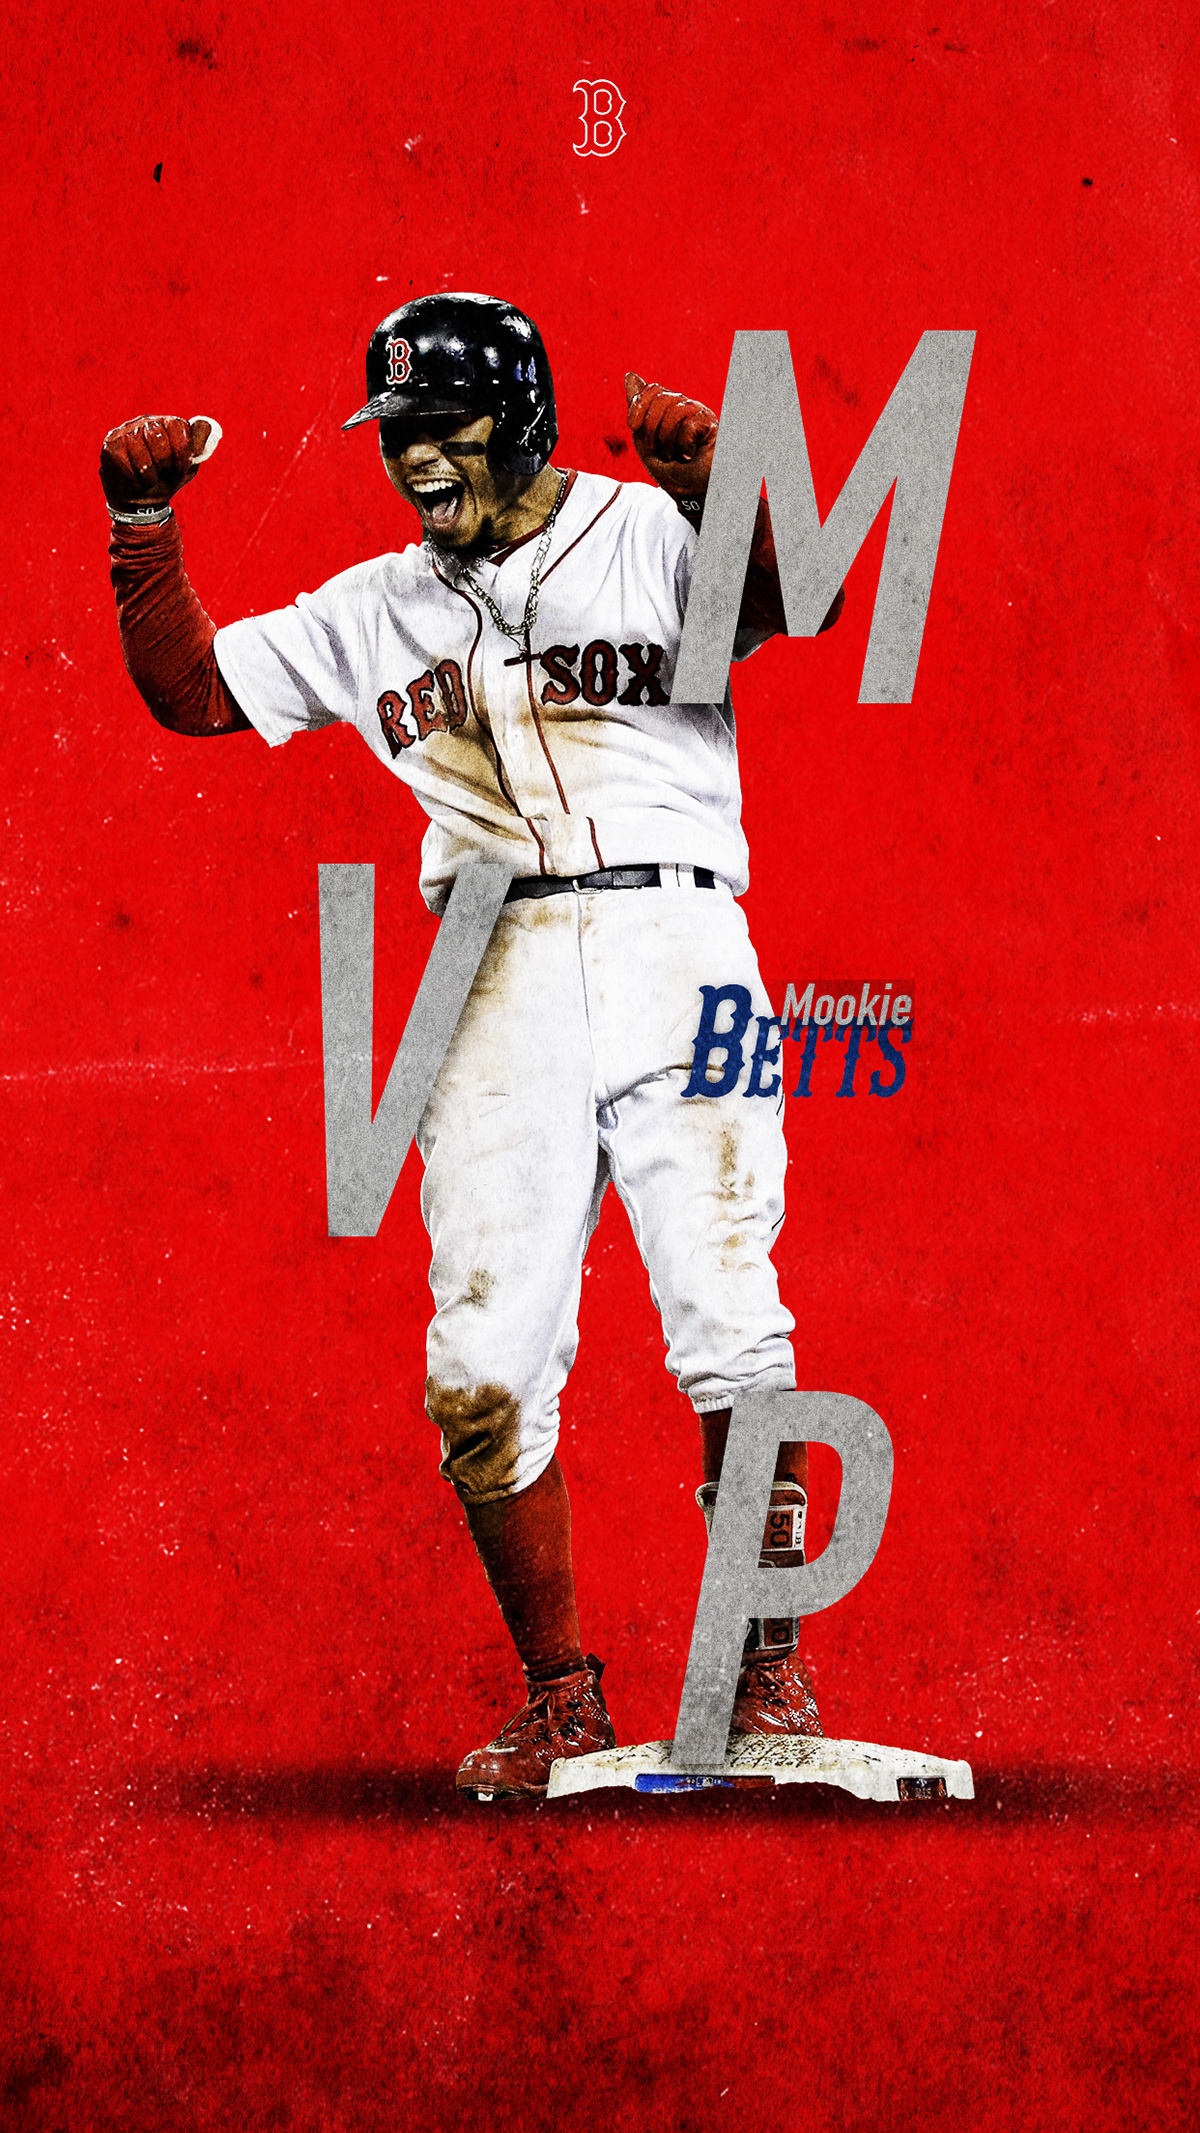 2018 Boston Red Sox Wallpapers On Behance